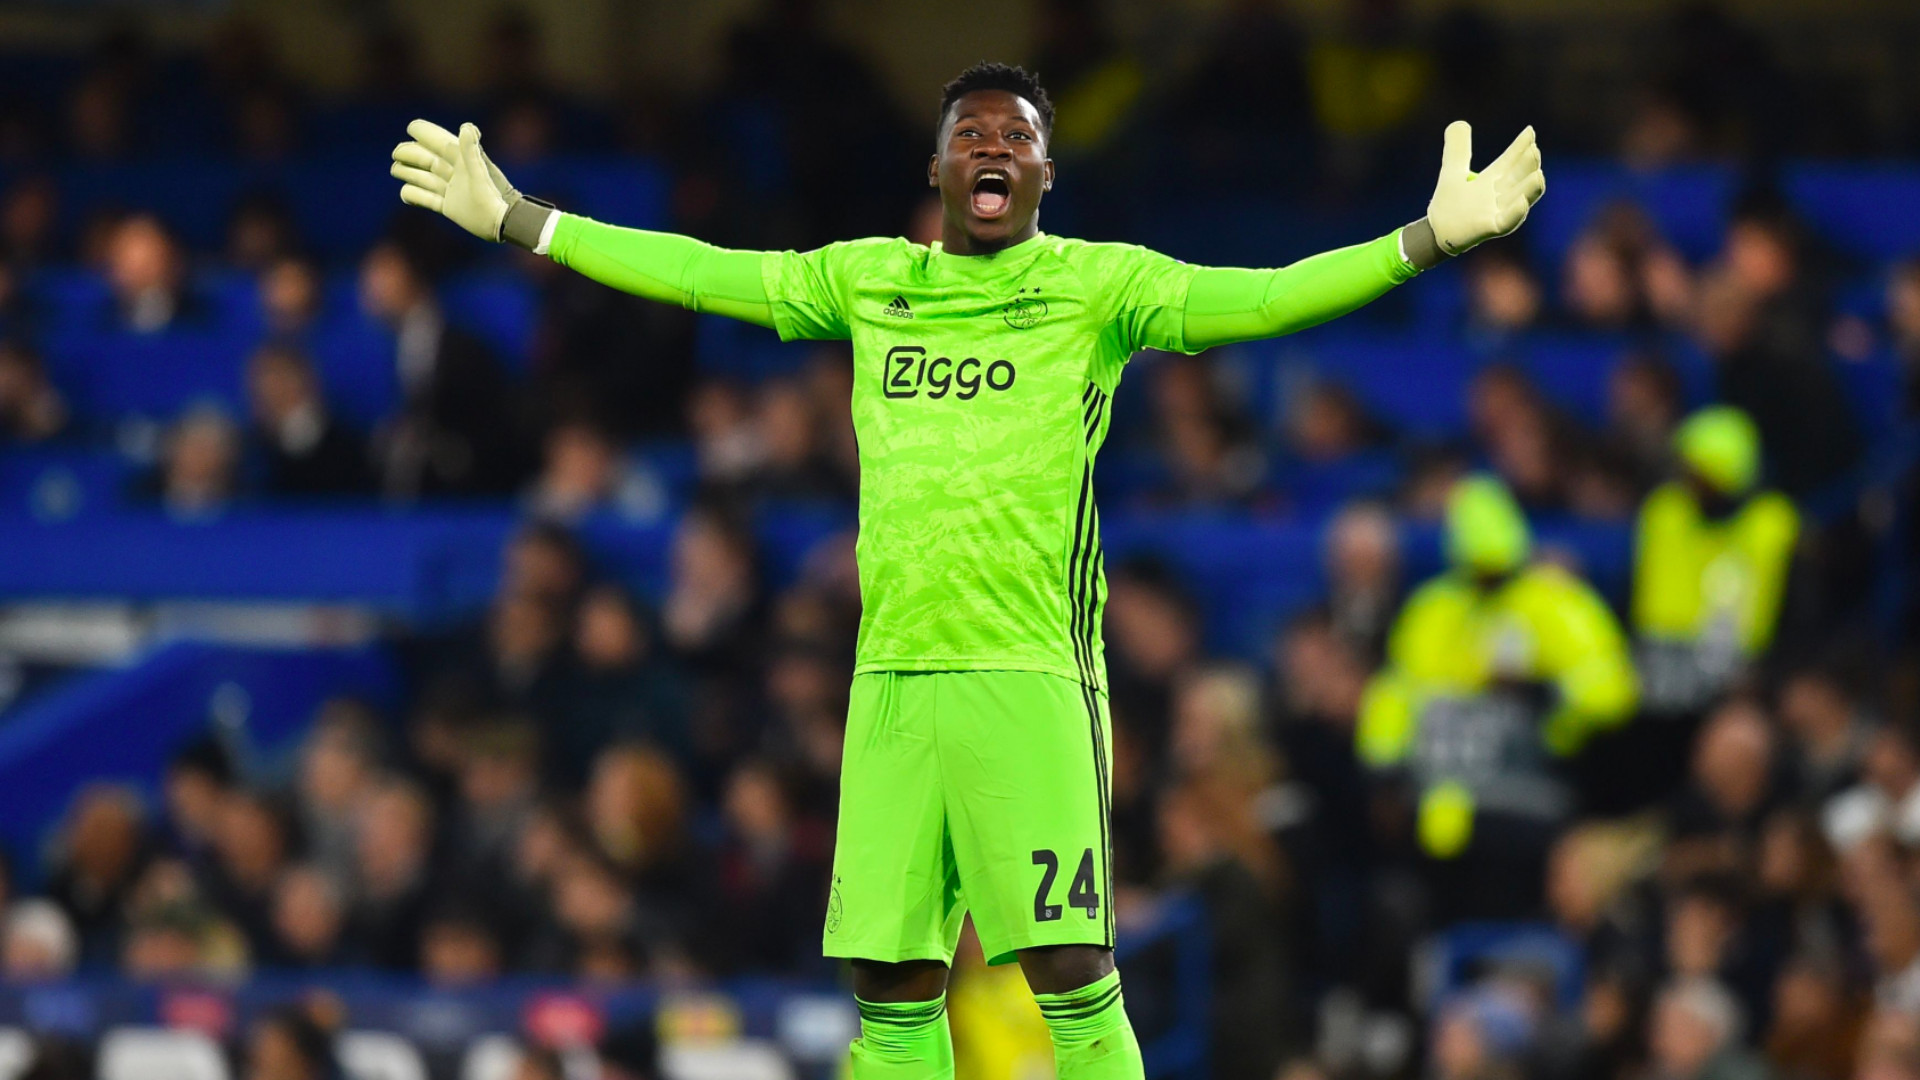 'Everything happens fast in football' - Onana on Barcelona, Chelsea, PSG interest